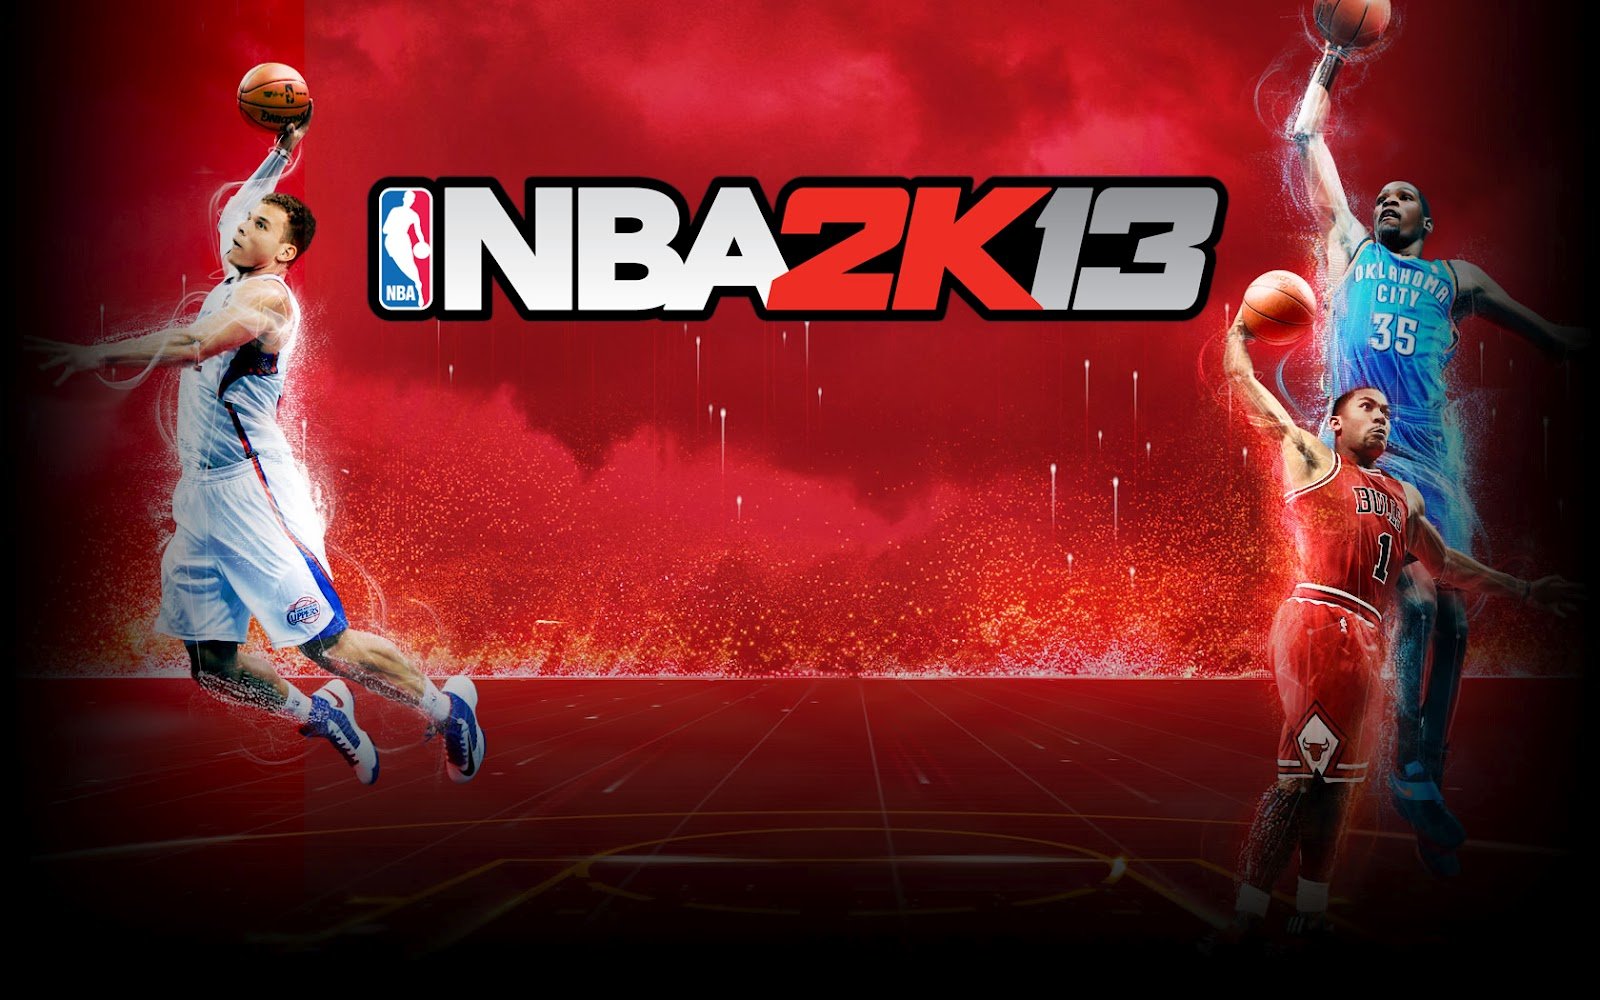 NBA 2K13 Wallpaper NBA2K 1600x1000